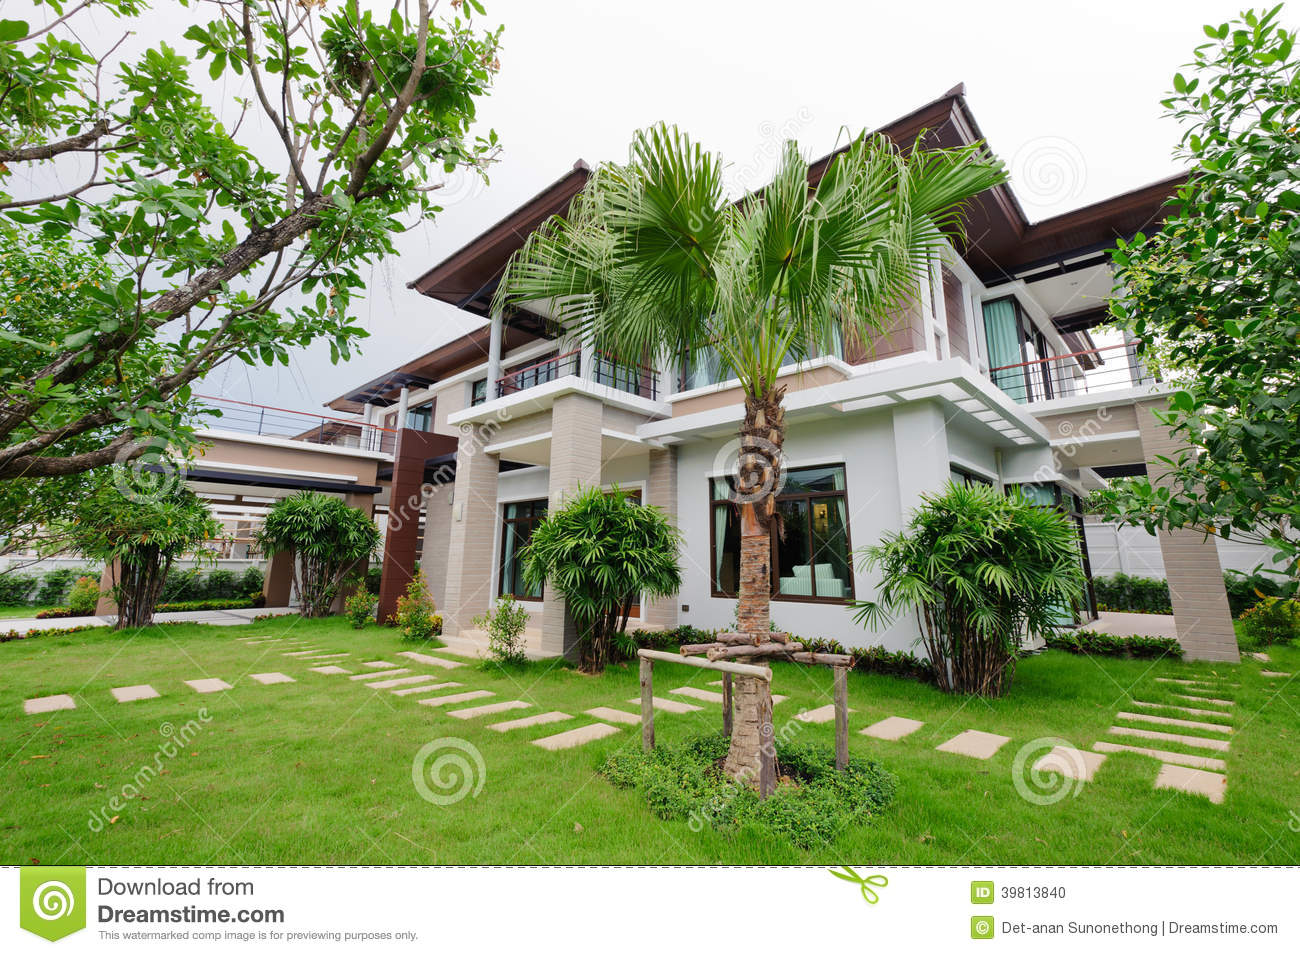 Modern house and garden stock photo image of architecture for Casa con jardin al frente